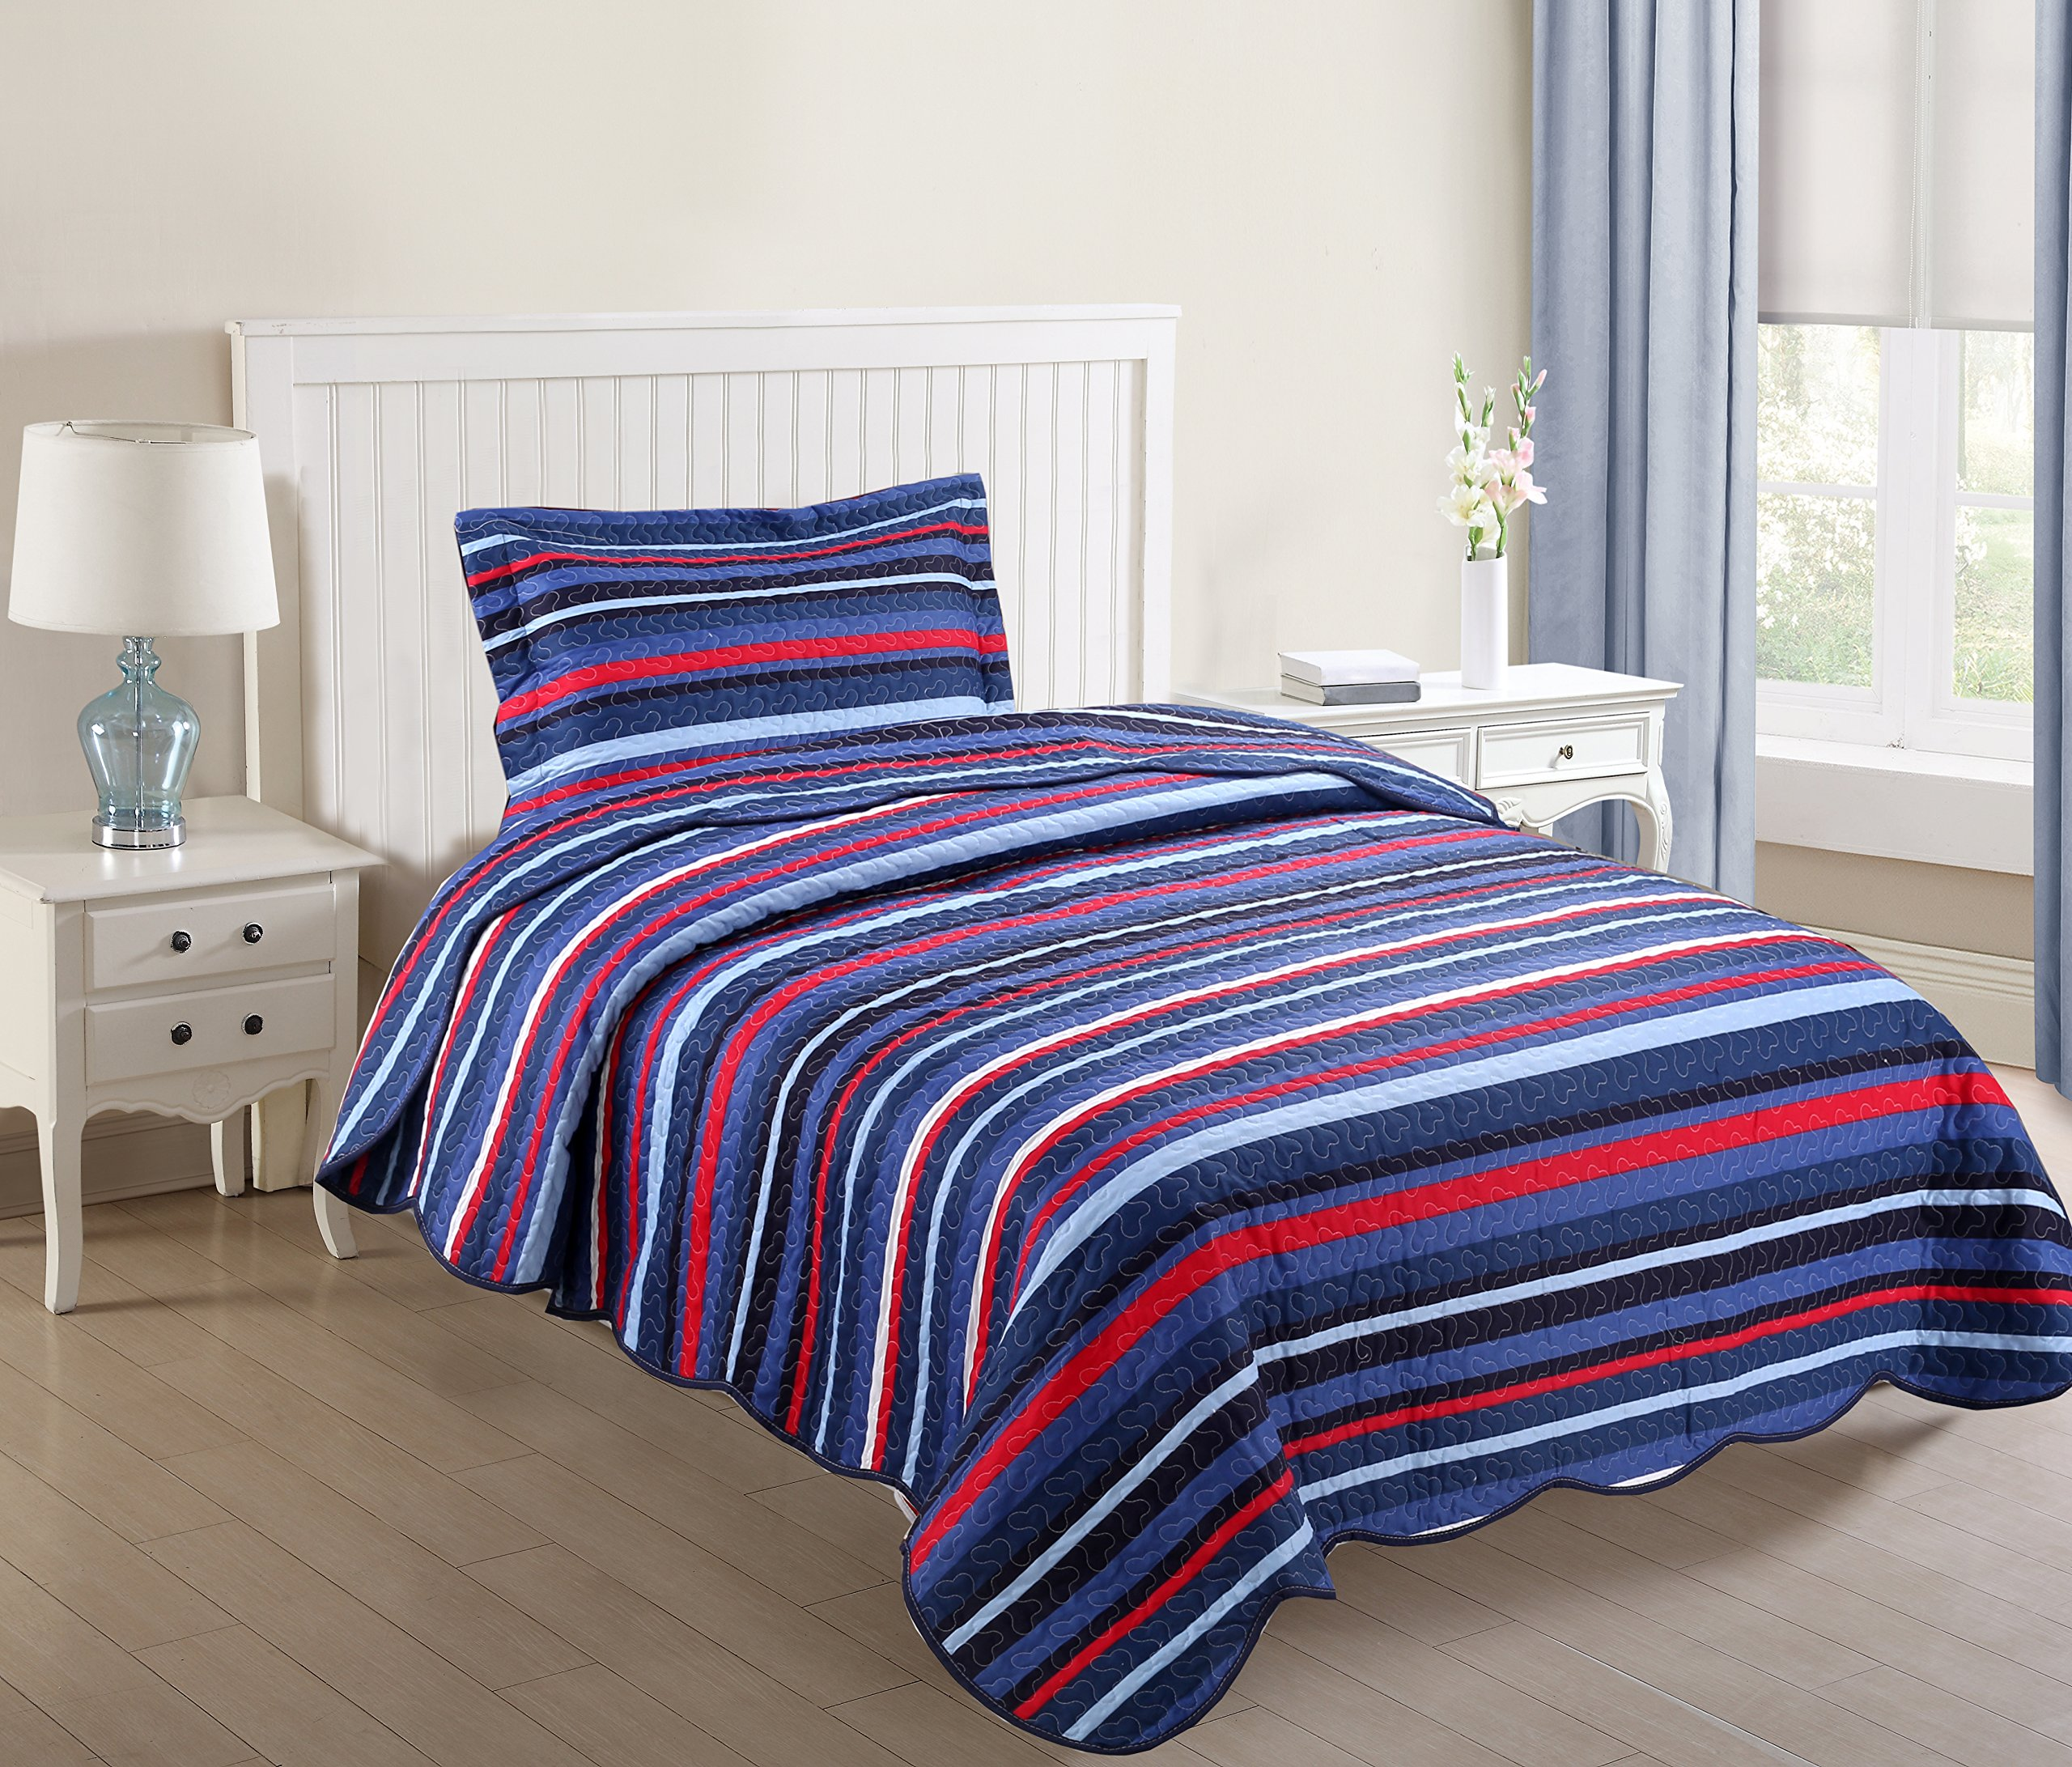 MarCielo 2 Piece Kids Bedspread Quilts Set Throw Blanket for Teens Boys Girls Bed Printed Bedding Coverlet, Twin Size, Blue Striped (Twin)